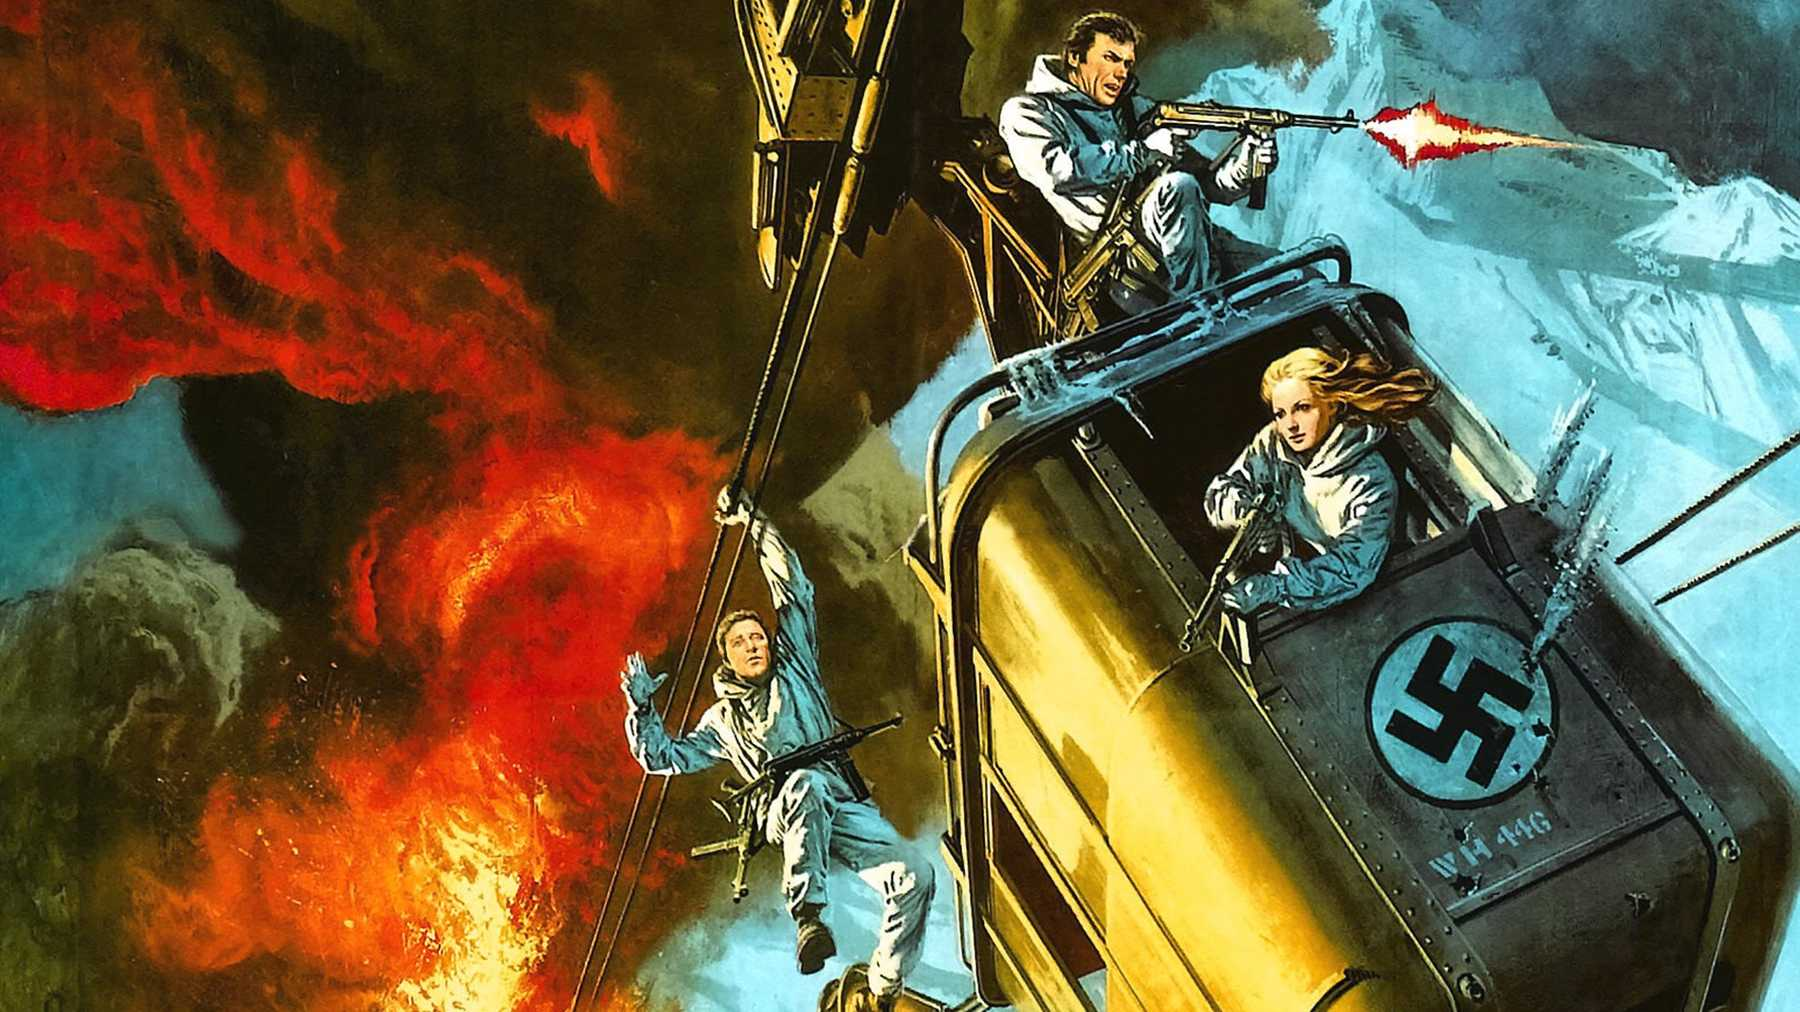 War Movie : Where Eagles Dare (1968)